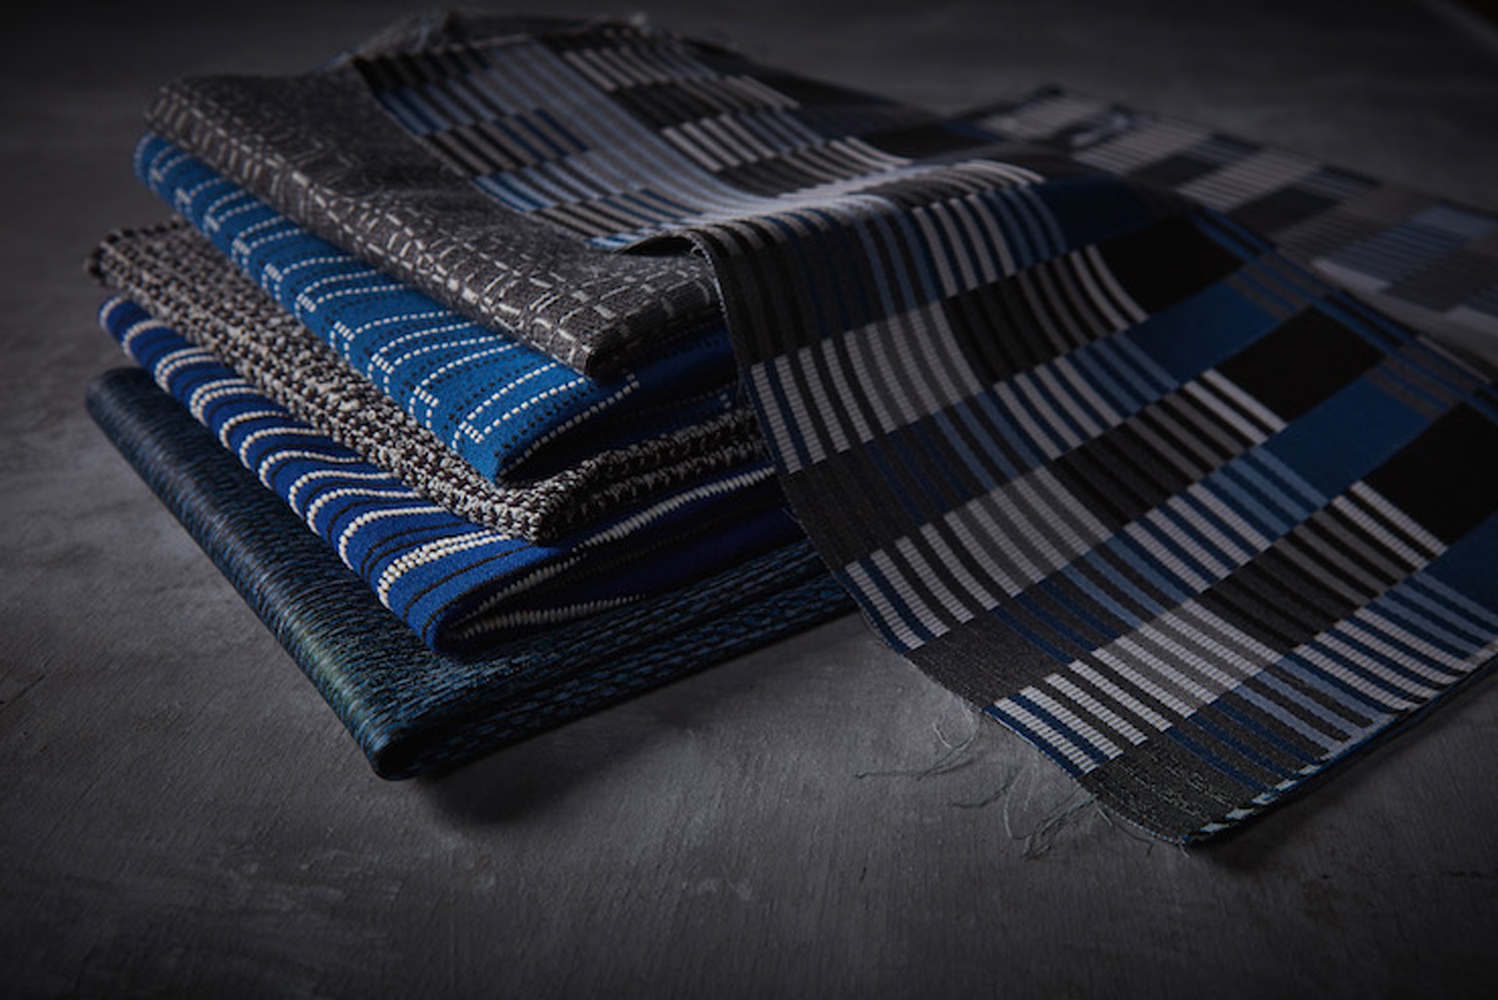 Introducing Minim, a new collection of textiles from US-based Pallas Textiles.